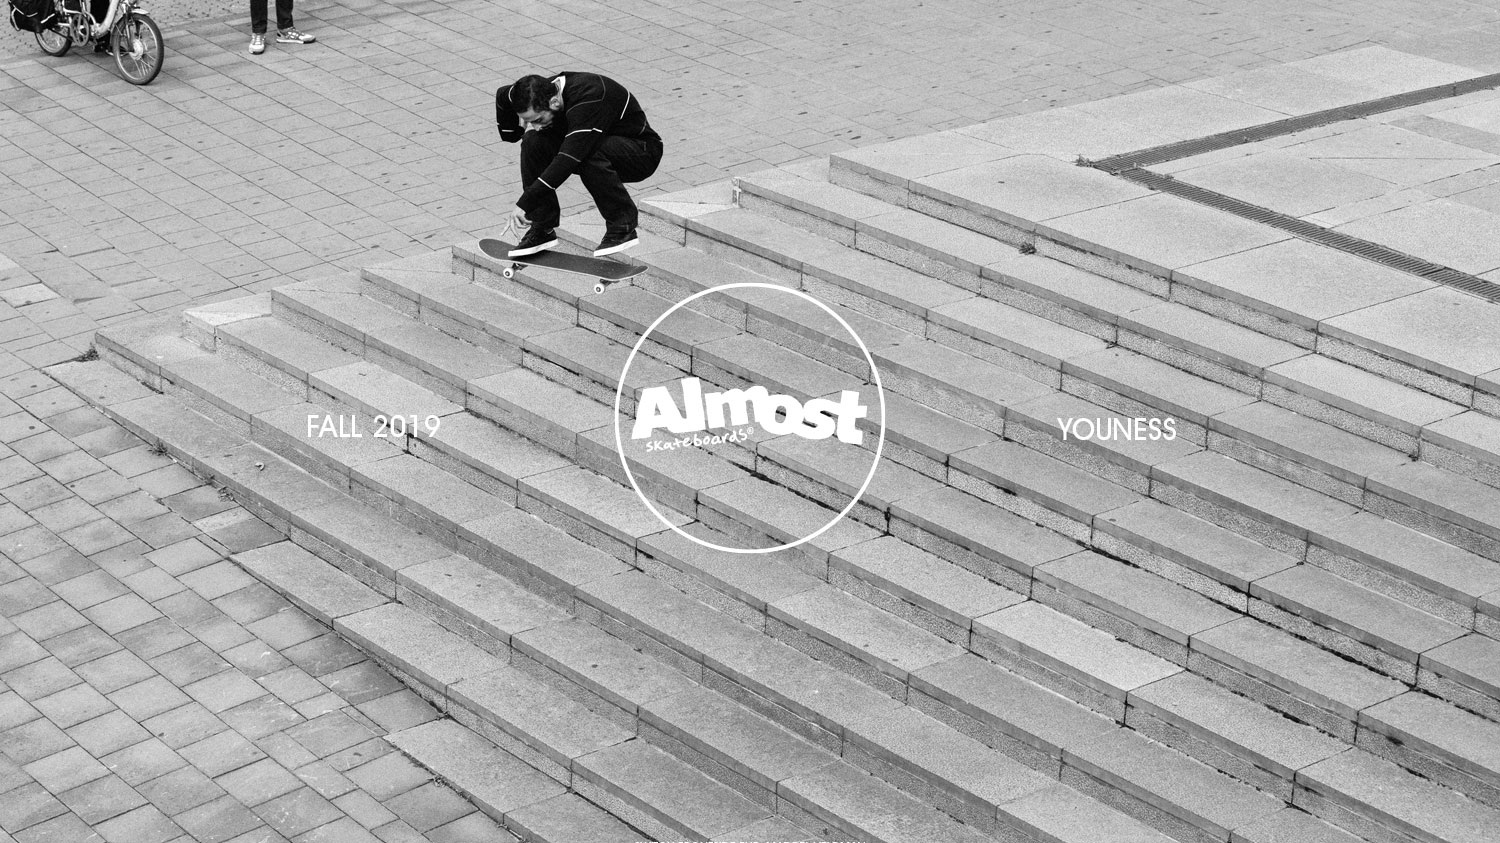 Almost_Skateboards_FALL_2019_YOUNESS.jpg